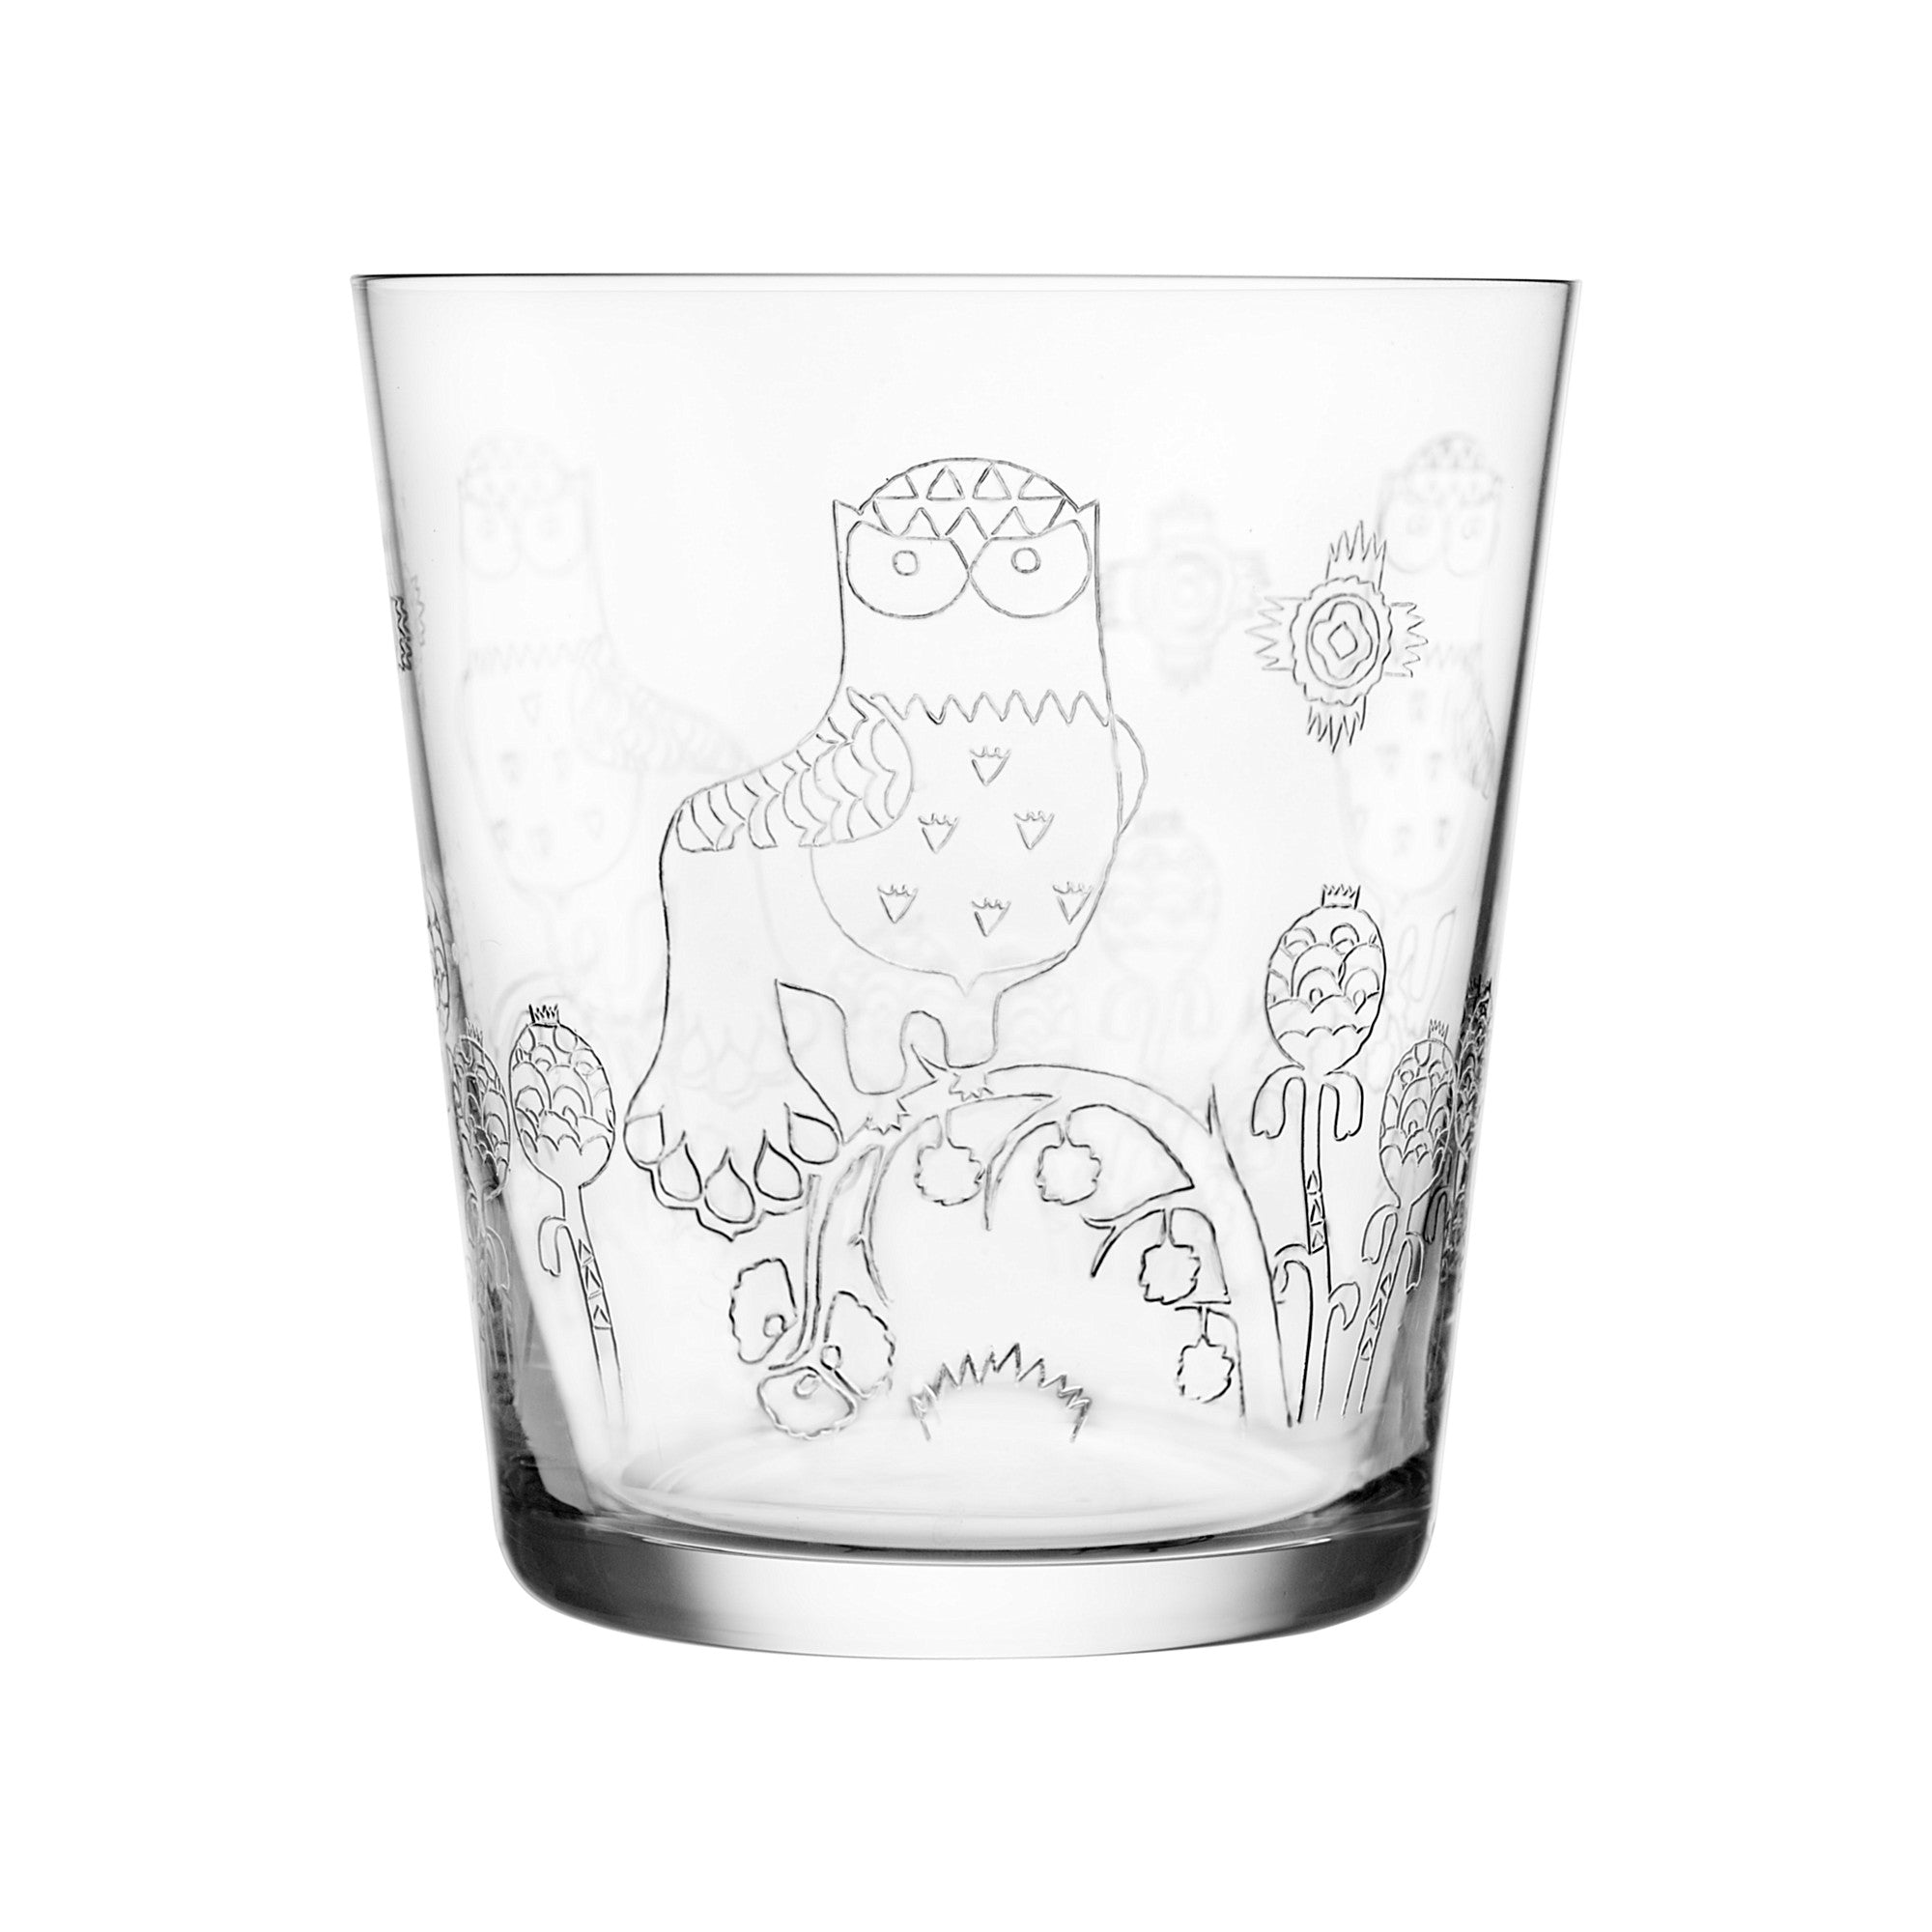 Taika glass 38 cl 2 pcs clear tumblers 13oz